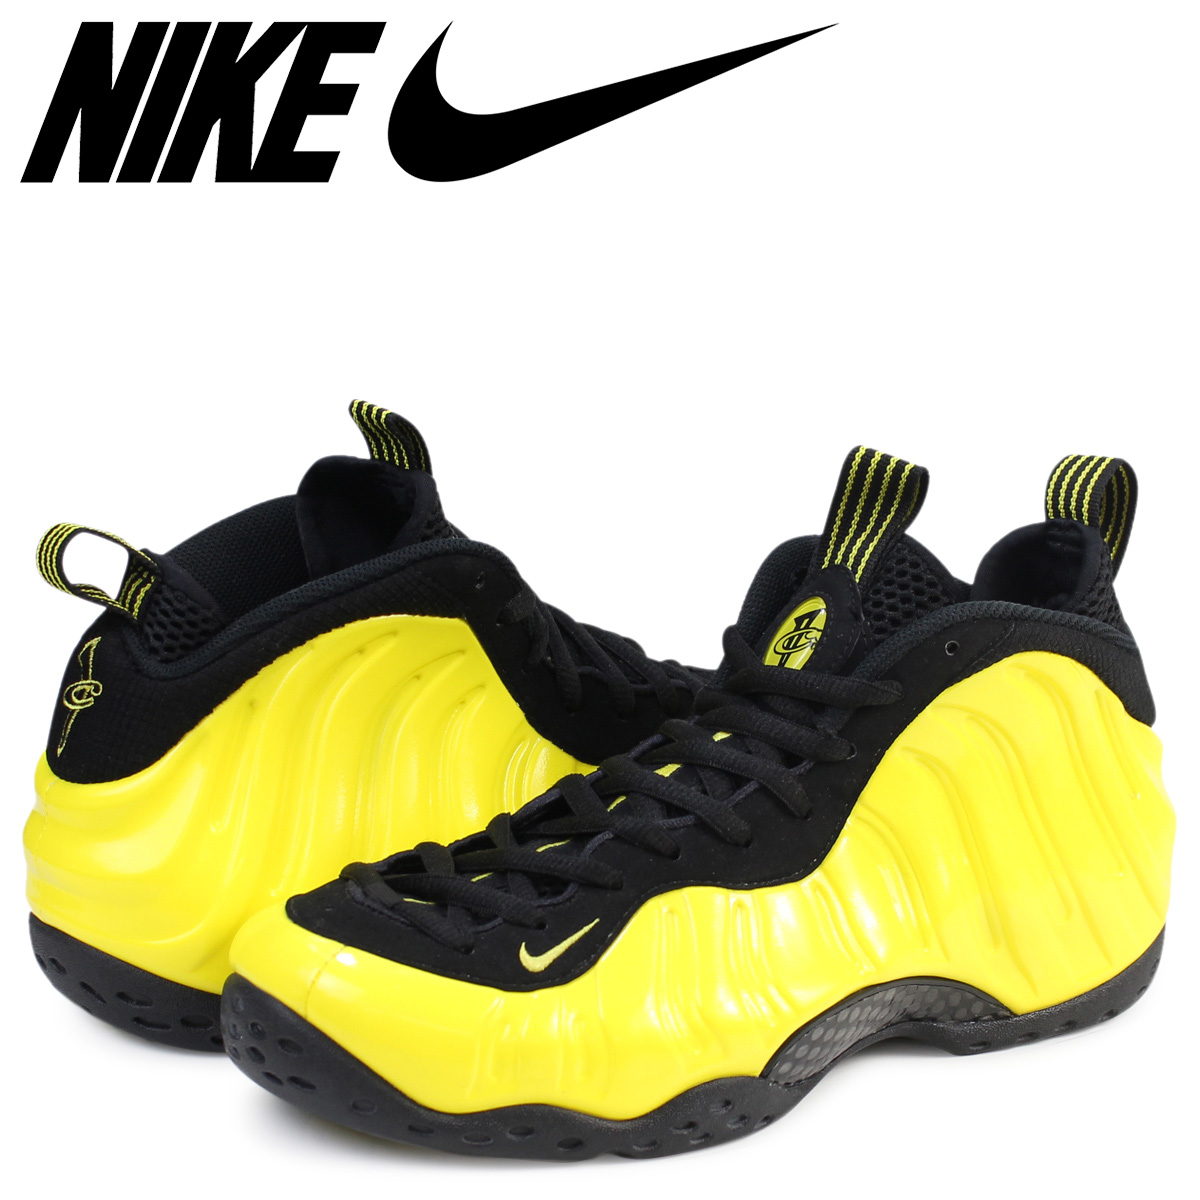 brand new c19a2 40760 ALLSPORTS   SOLD OUT  NIKE ナイキエアフォームポジットスニーカー AIR FOAMPOSITE ONE men  314,996-701 shoes yellow  176    Rakuten Global Market